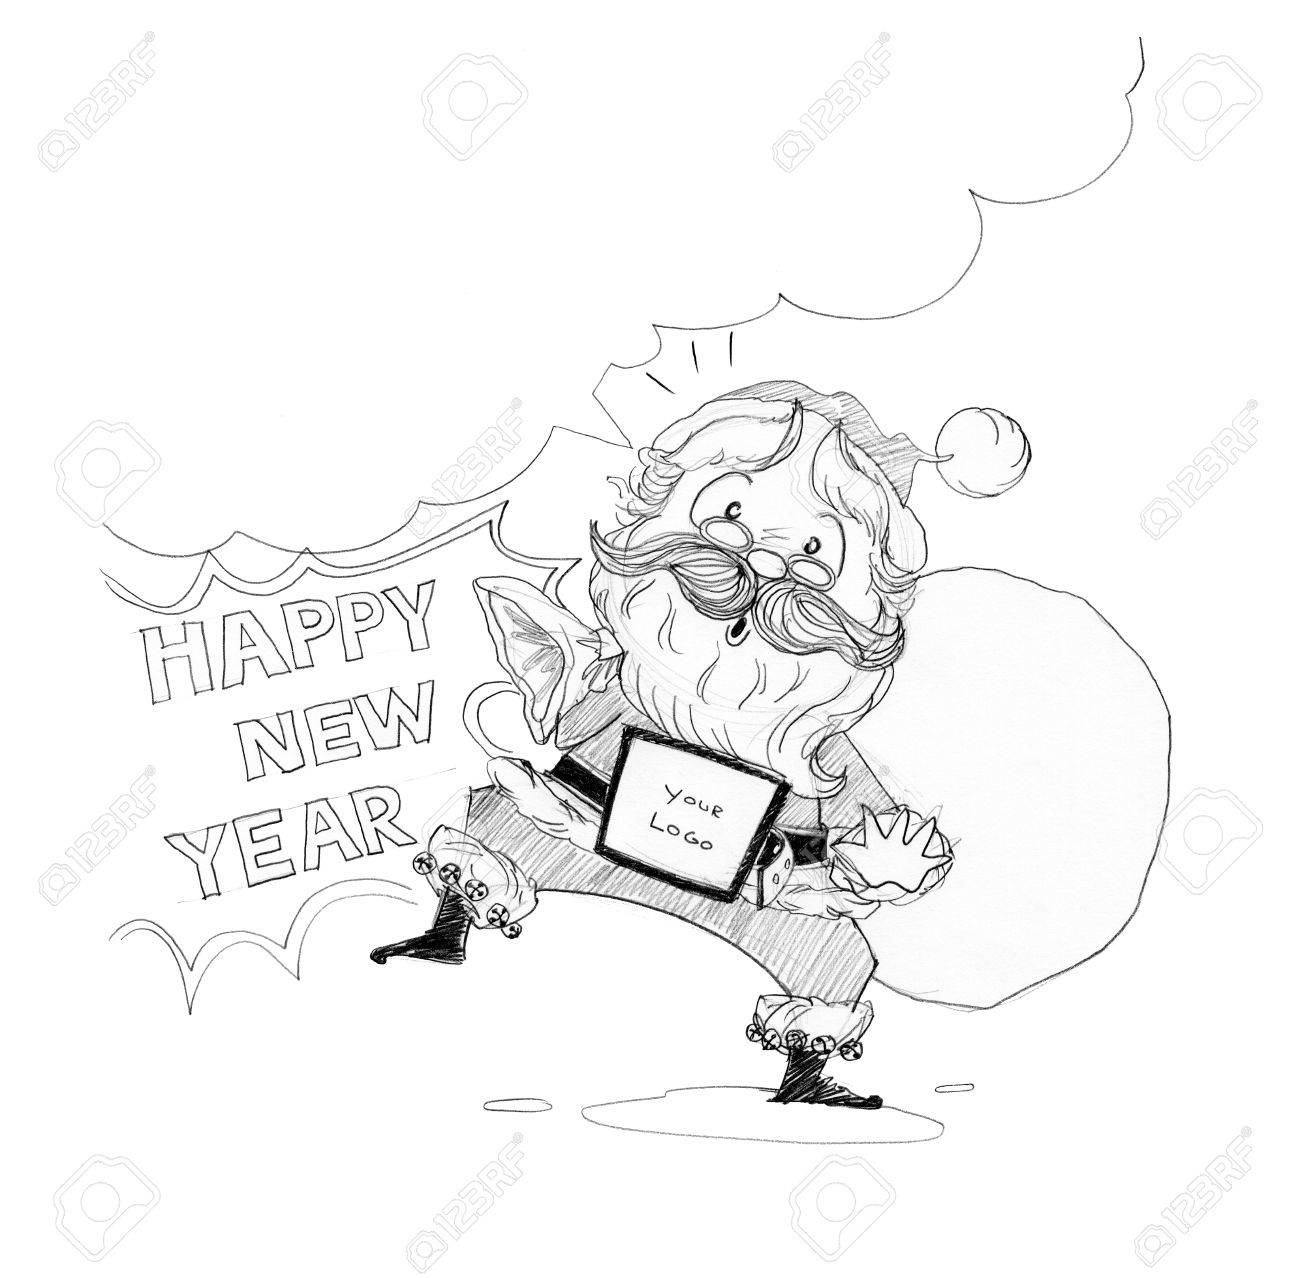 Santa claus welcome acting happy new year merry christmas theme cartoon freehand pencil sketch for